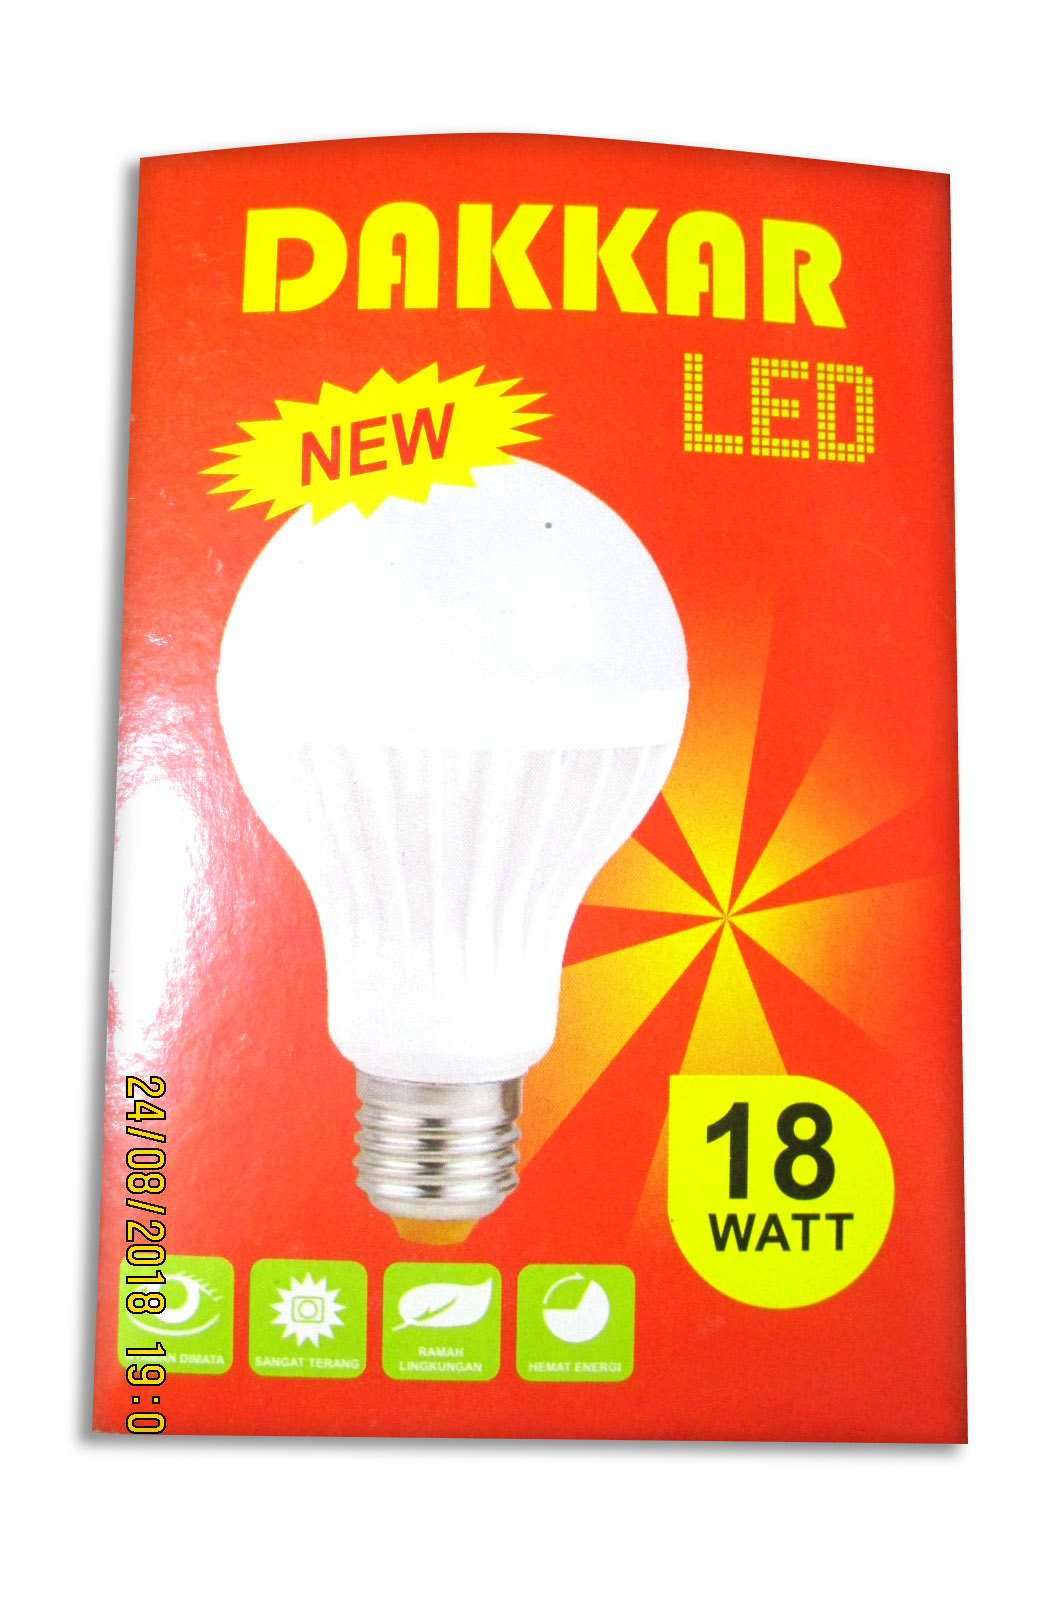 Lampu LED 18 WATT